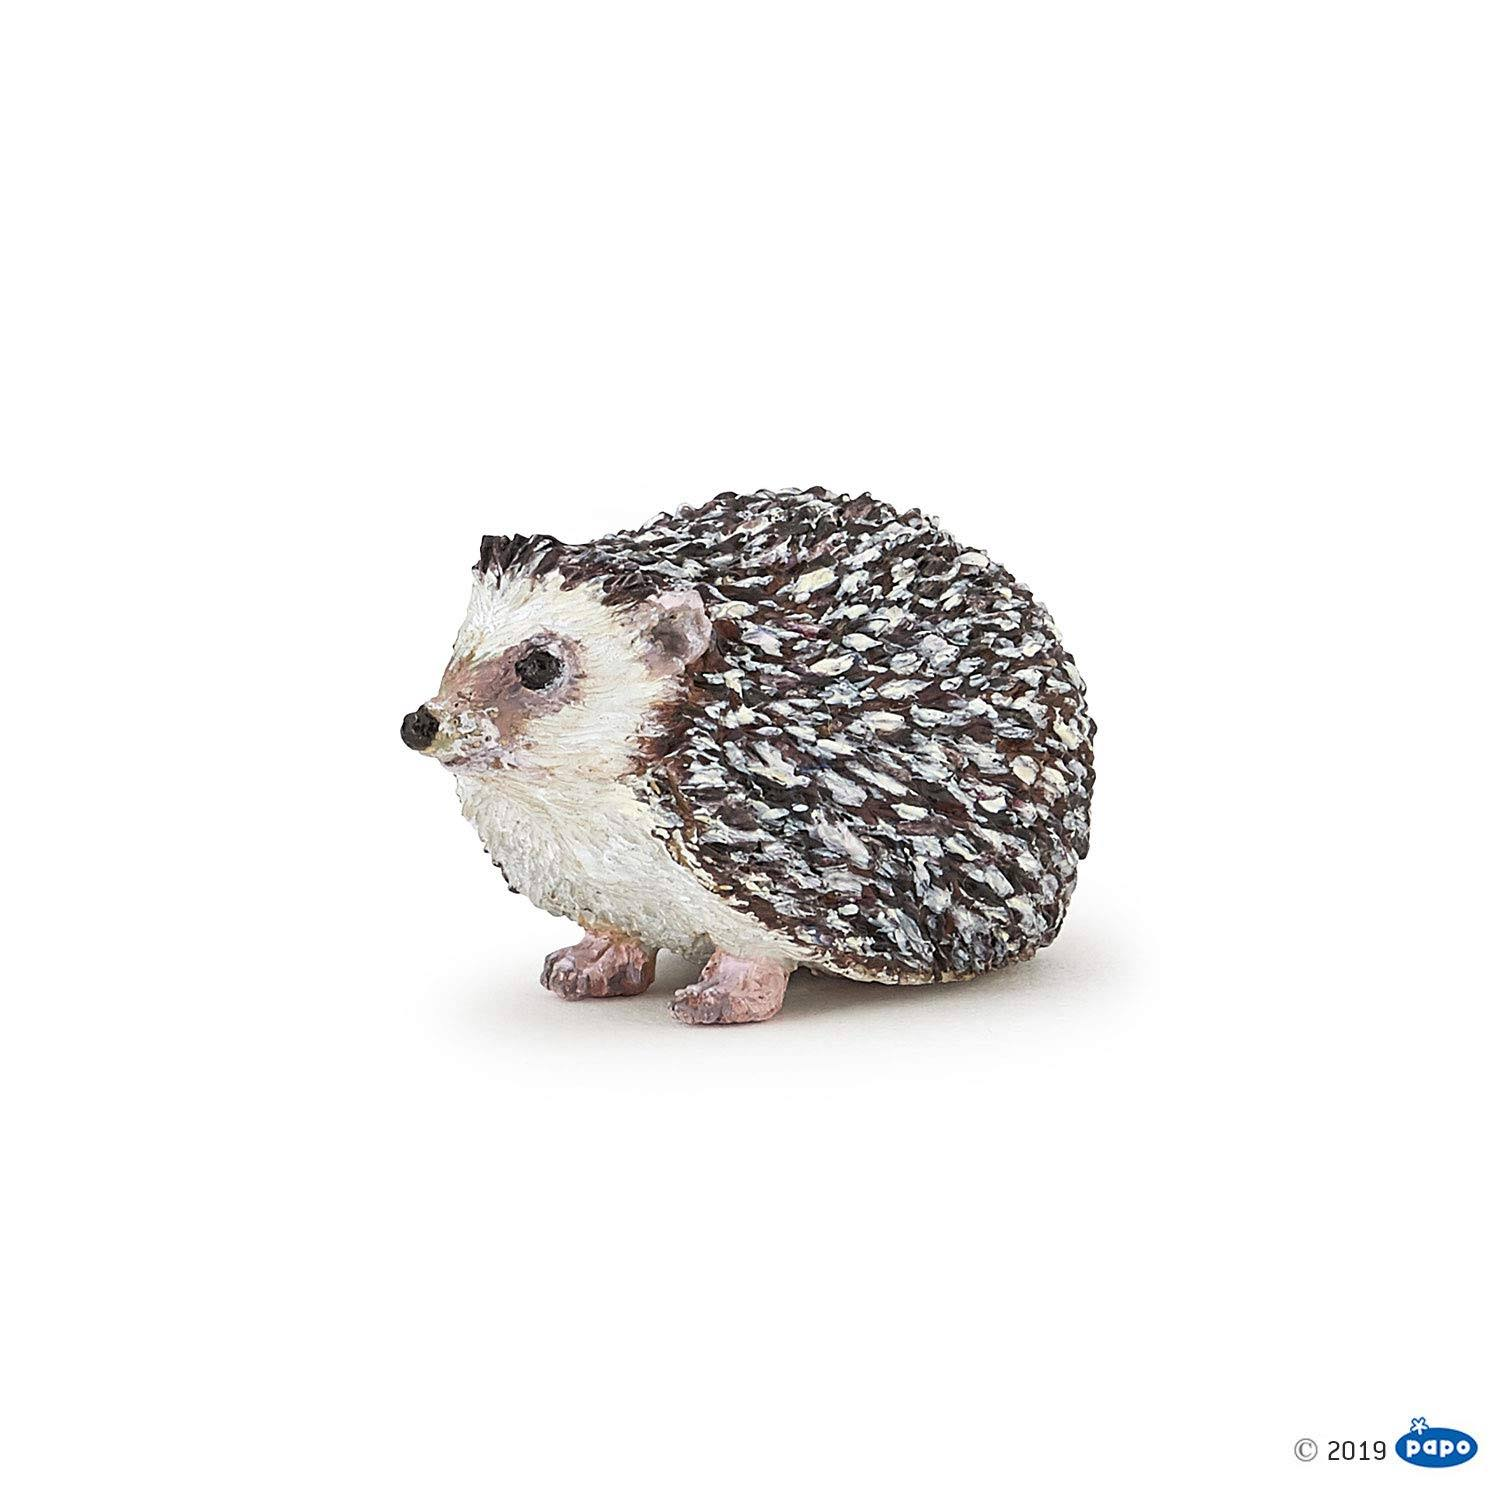 Papo Wild Animal Kingdom Figure - Hedgehog, 4.5cm